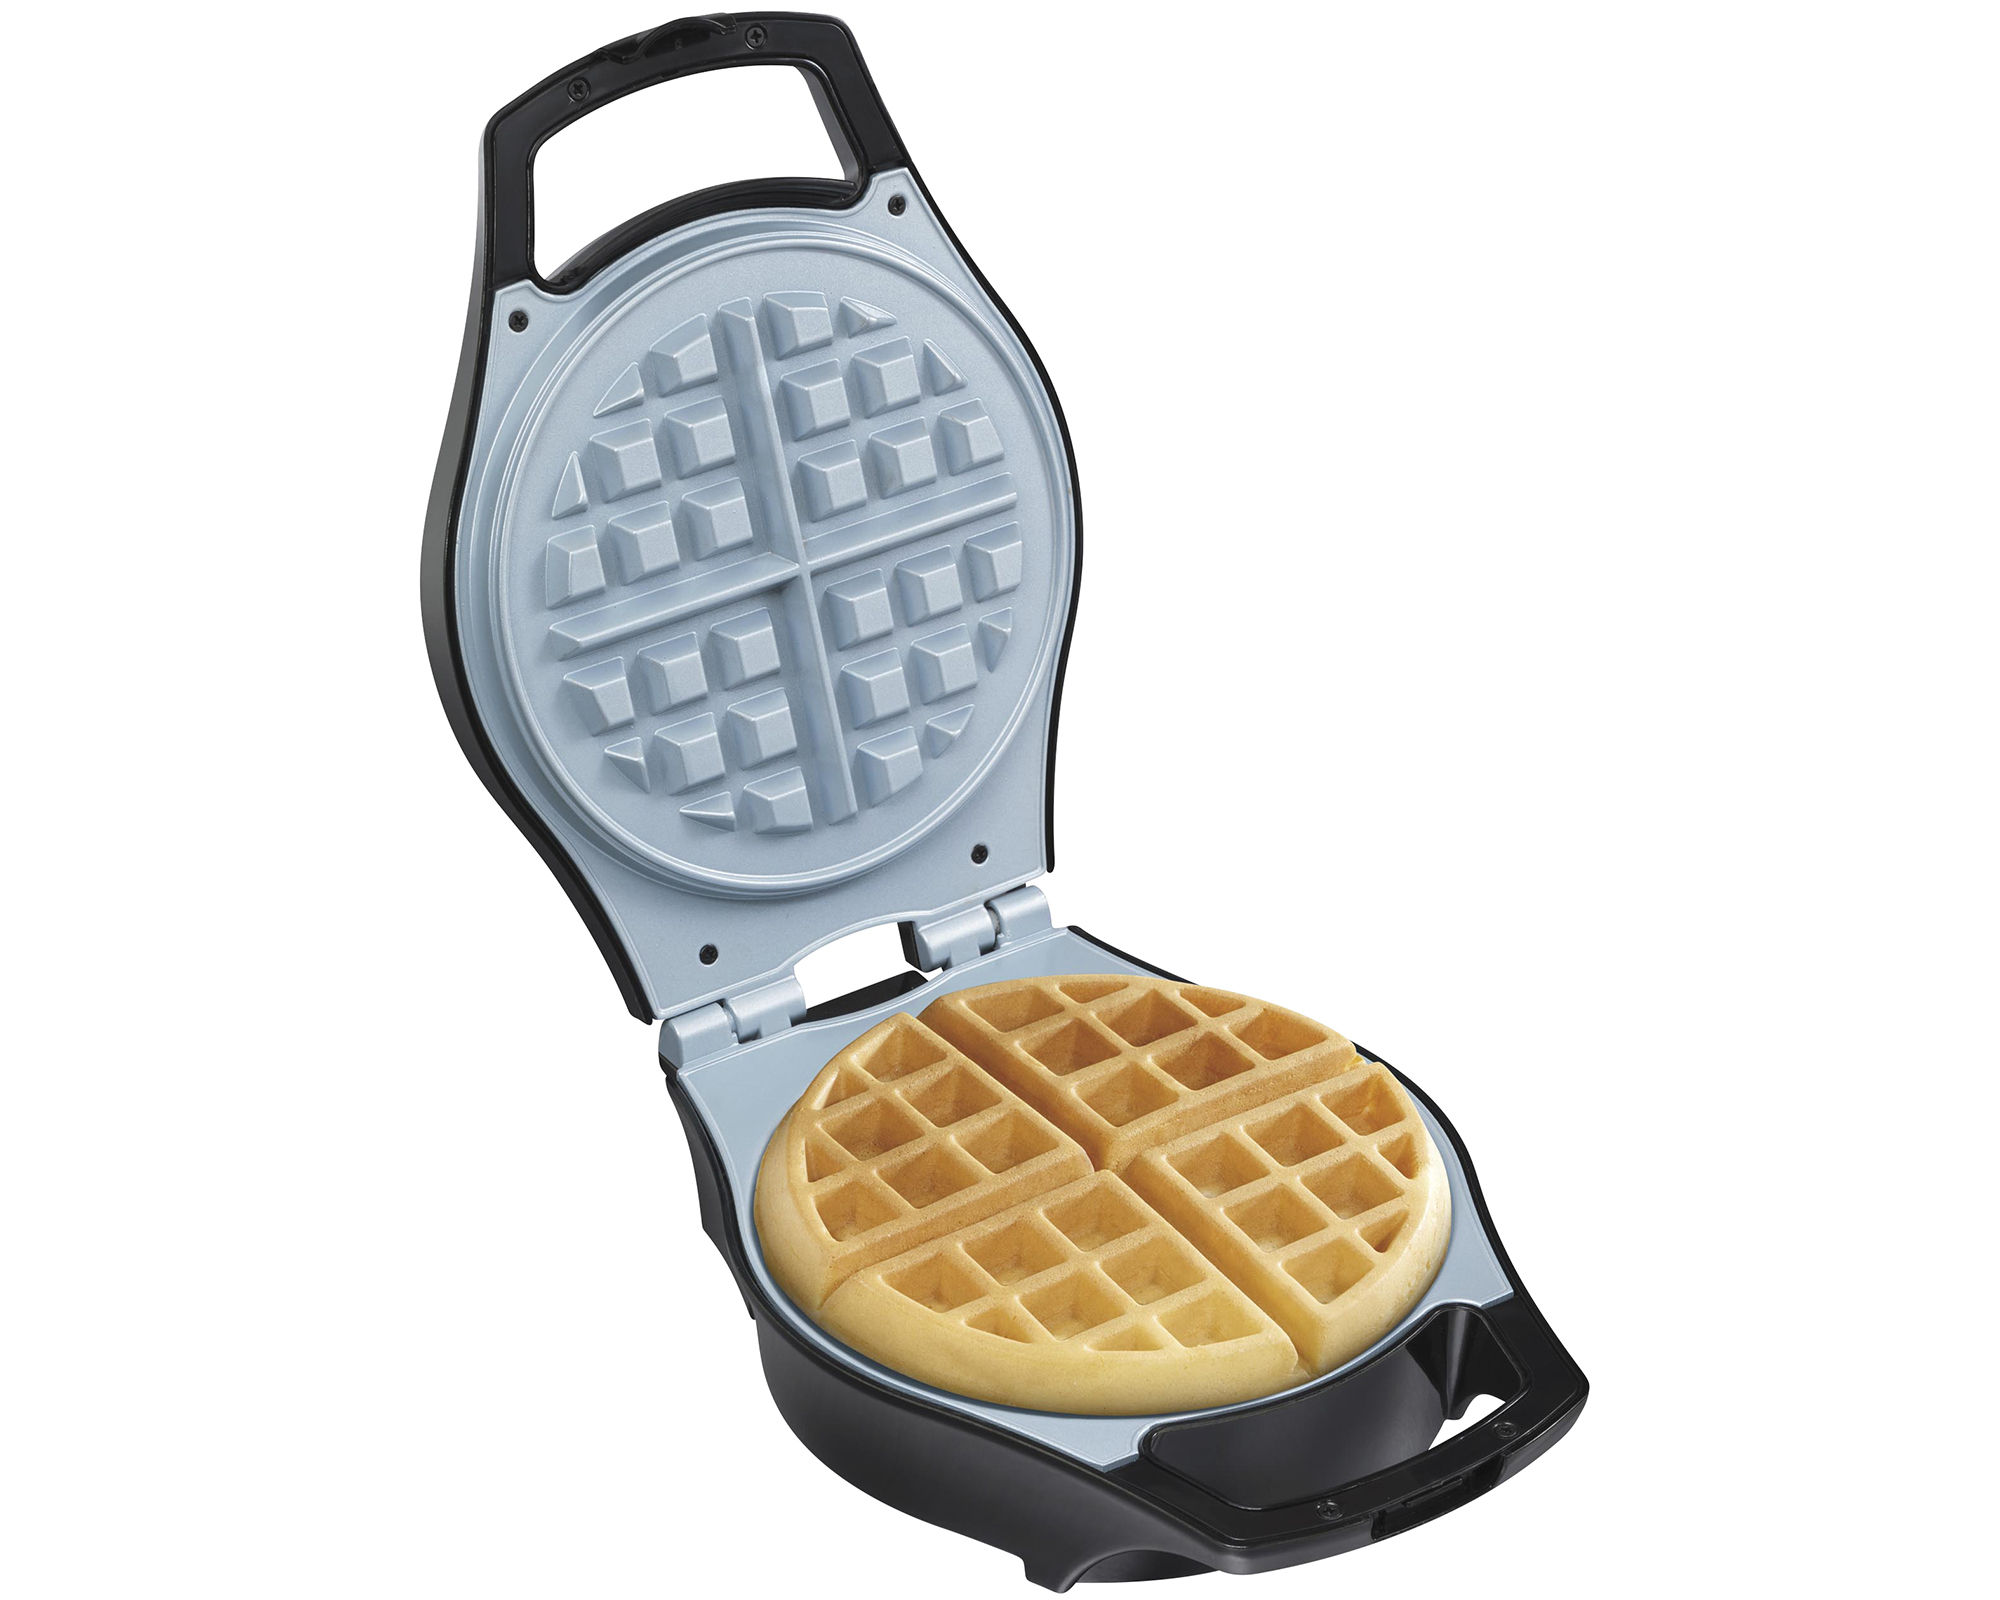 Hamilton Beach Mess-Free Belgian Waffle Maker + Ceramic Coated Grids